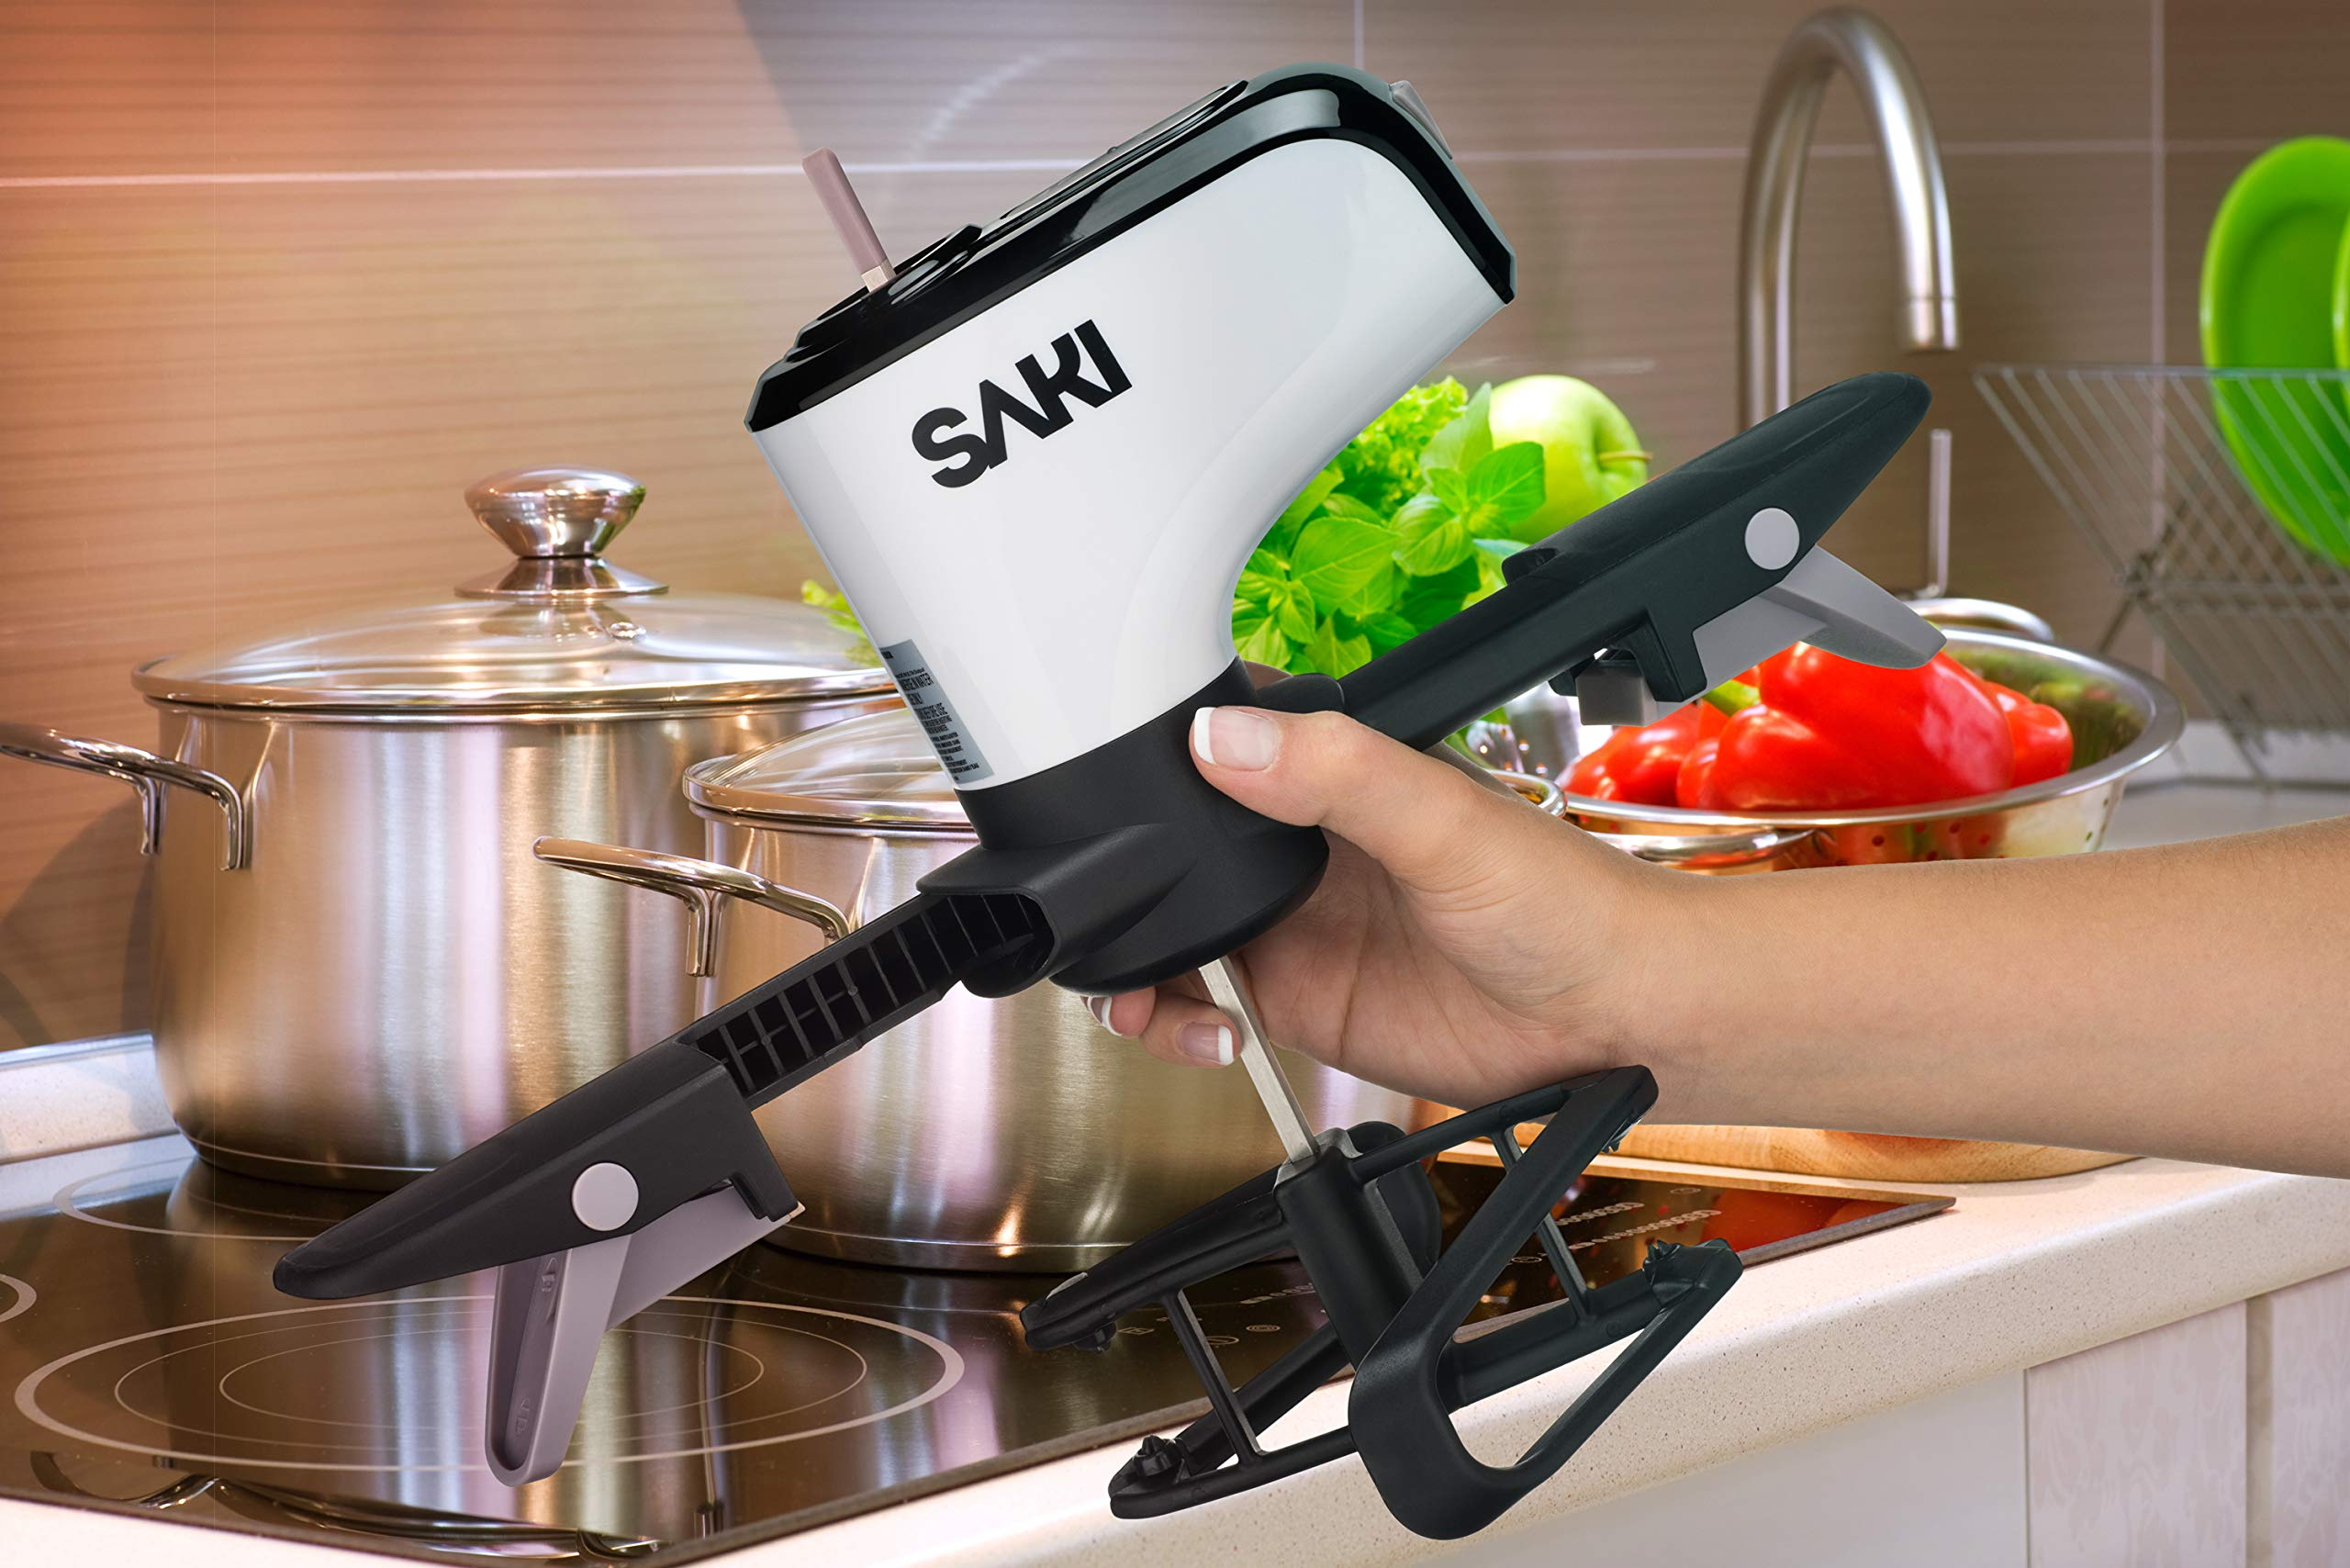 SAKI Automatic Pot Mixer Auto-Stirrer for Cooking - Adjustable, Hands Free, Electric - Self Stirring Kitchen Gadget with 2 speeds for Hot Pan, Saucepan - Easy-to-Use Food Tool Pot Accessories (Unique) by SAKI (Image #5)